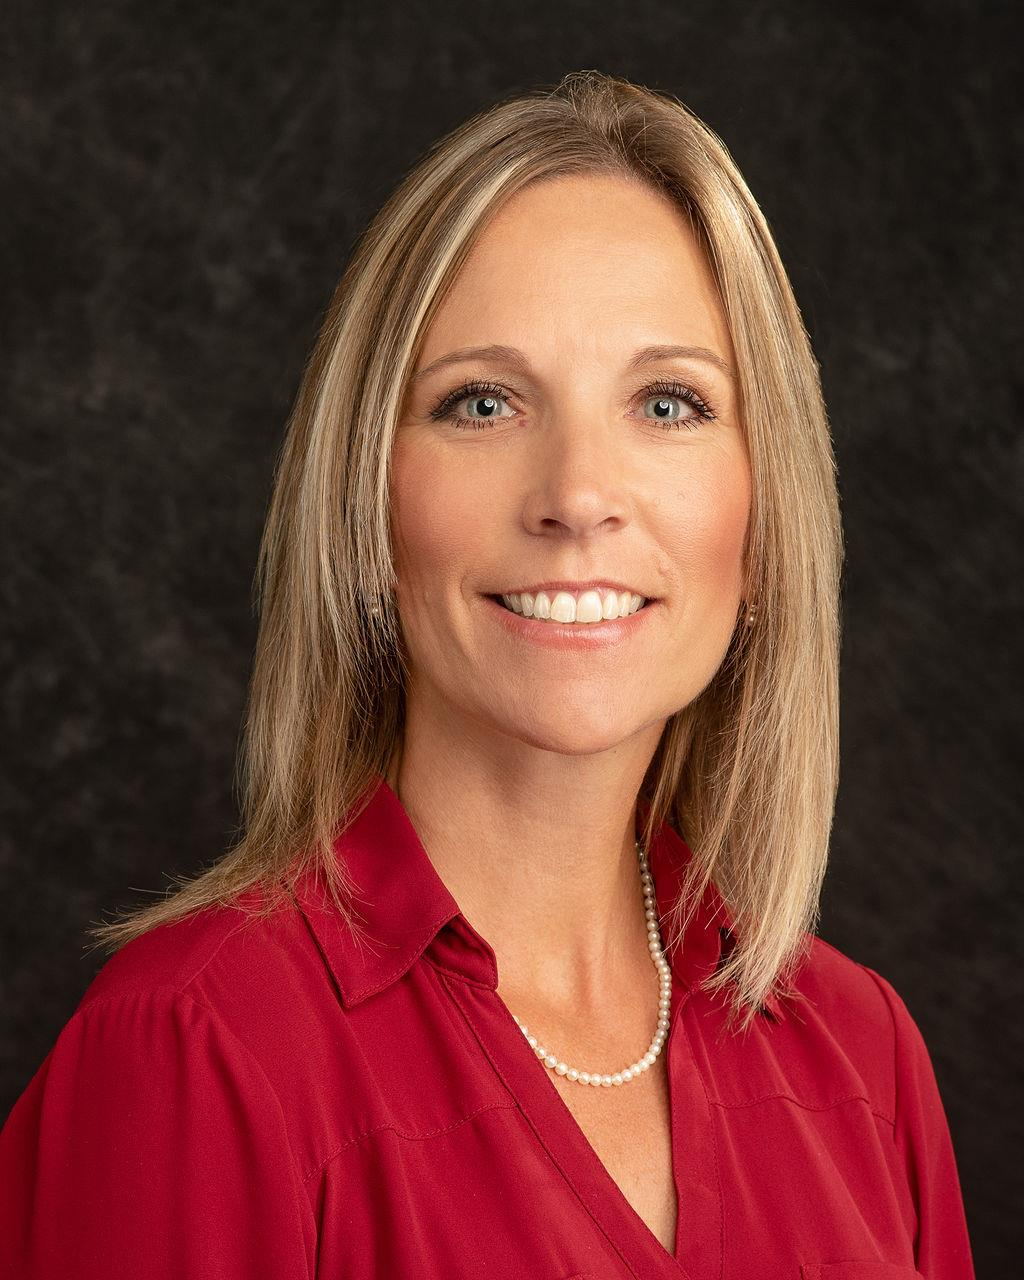 SARAH ESCHENBRENNER Financial Advisor